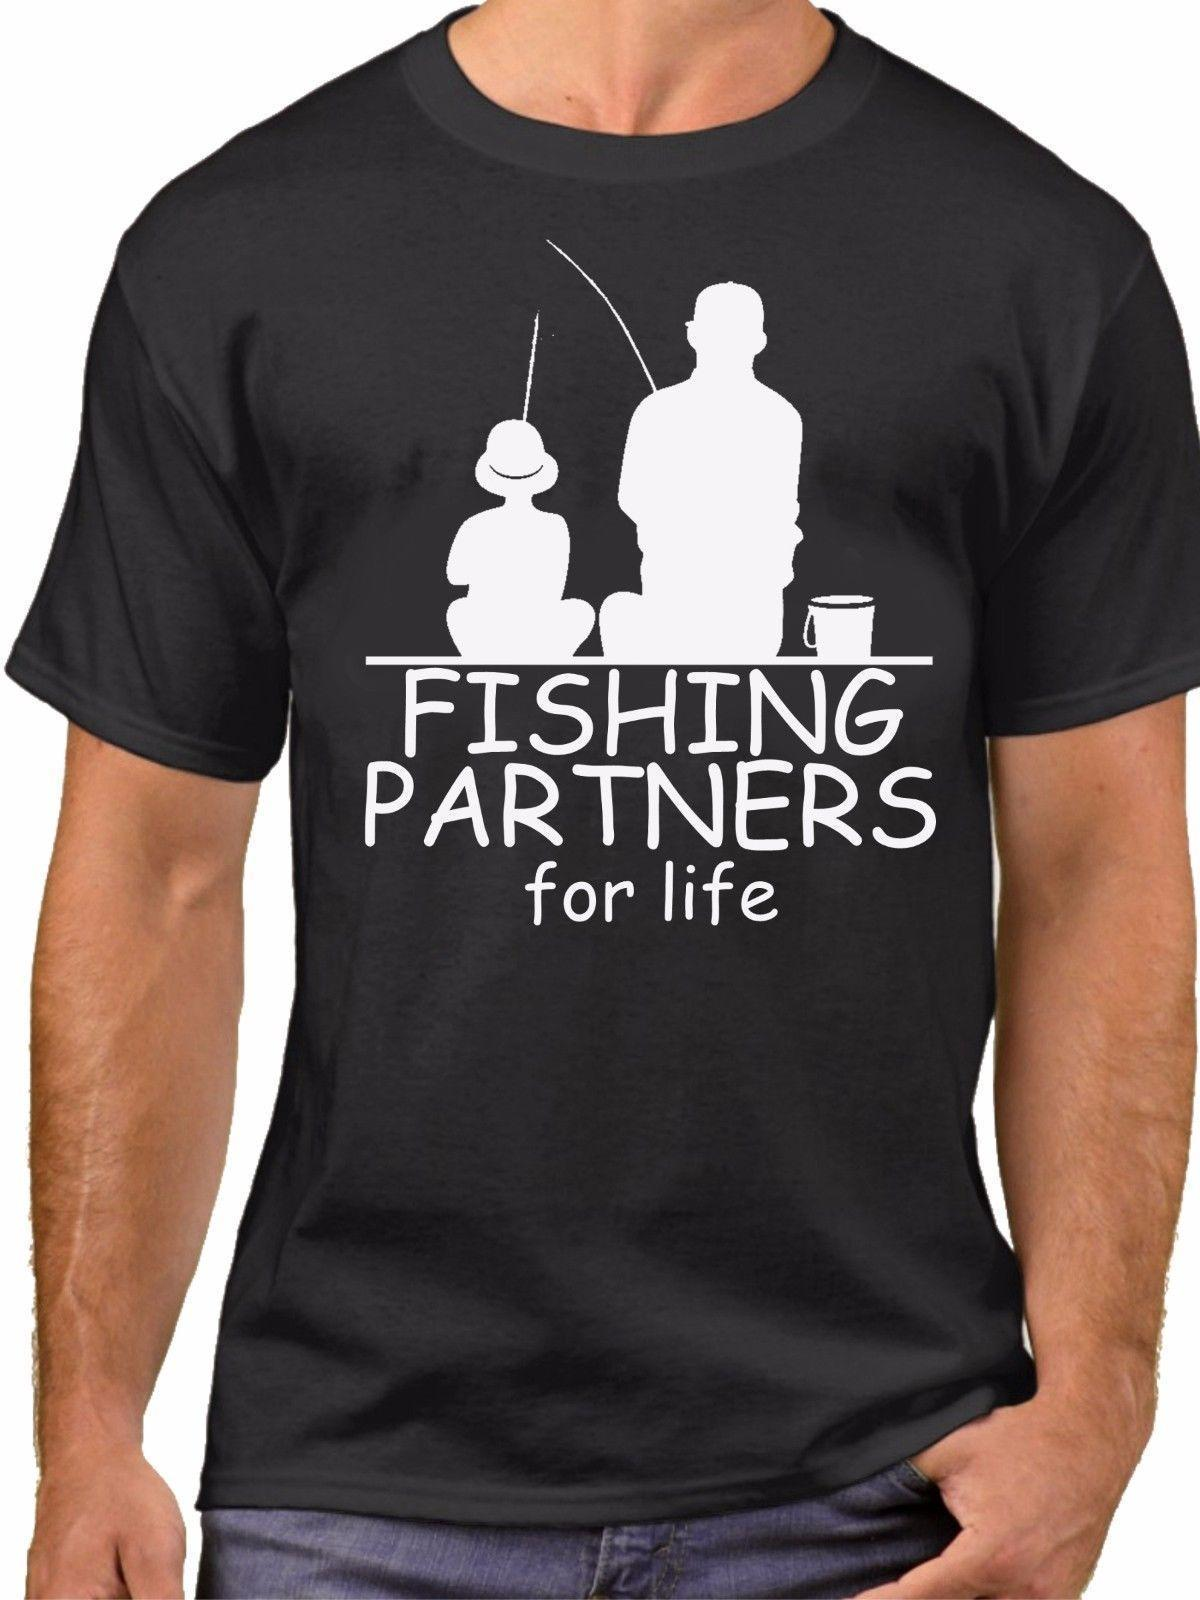 dd2ab150 Fishing Partners Shirts Father And Son Daughter Matching SET Tee Fathers Day  Shop Online T Shirts T Shirt From Yubin4, $14.67| DHgate.Com